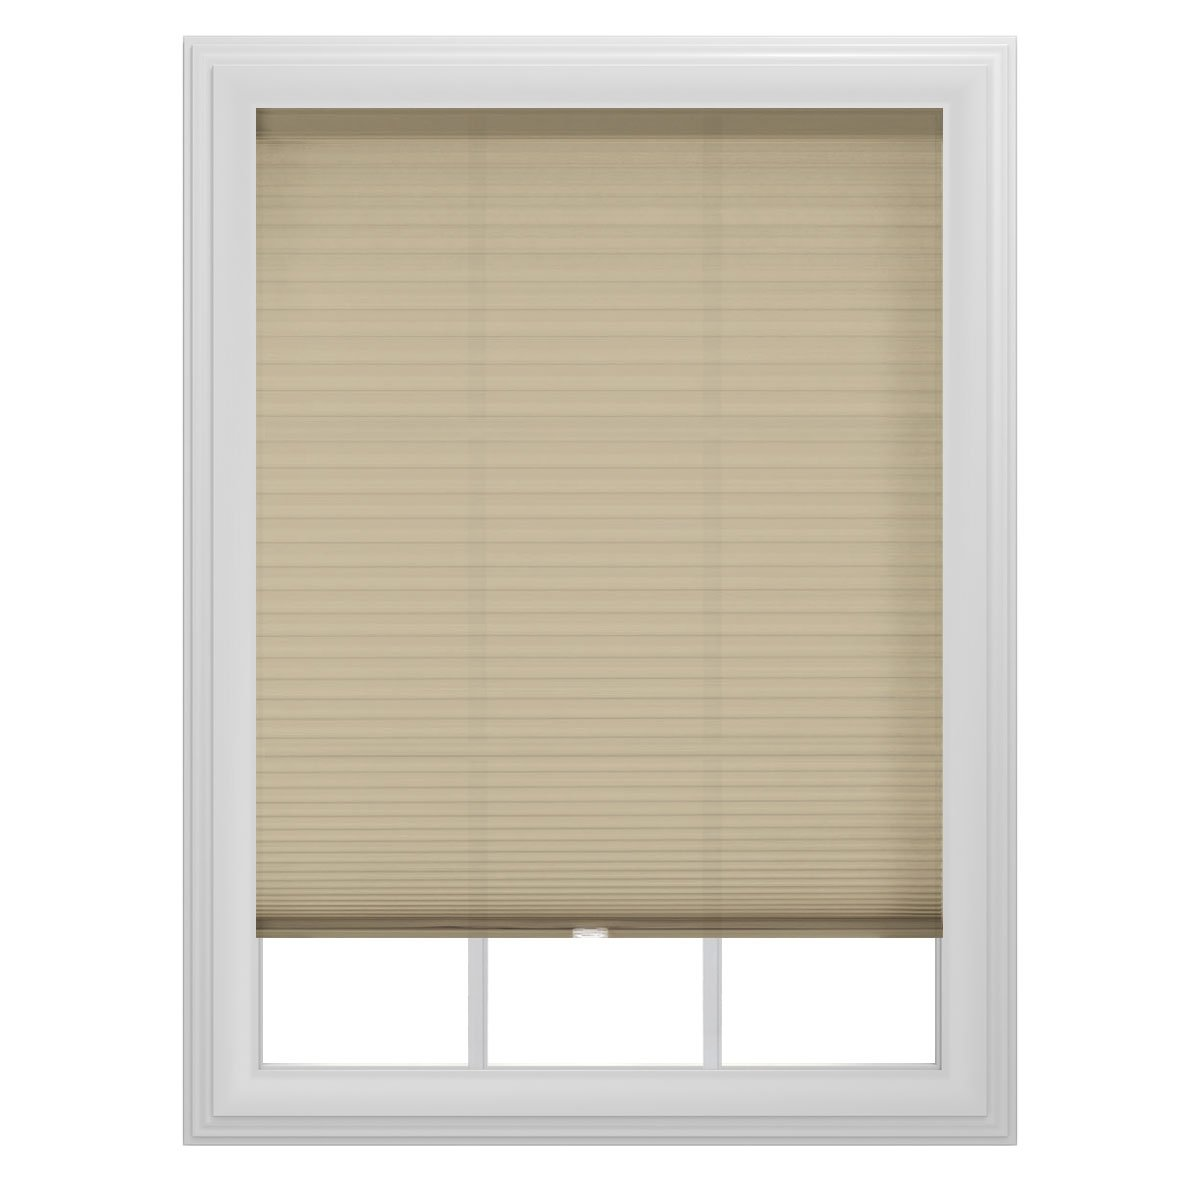 Amazoncom Bali Blinds 98 5404 08 Light Filtering Cellular Cordless